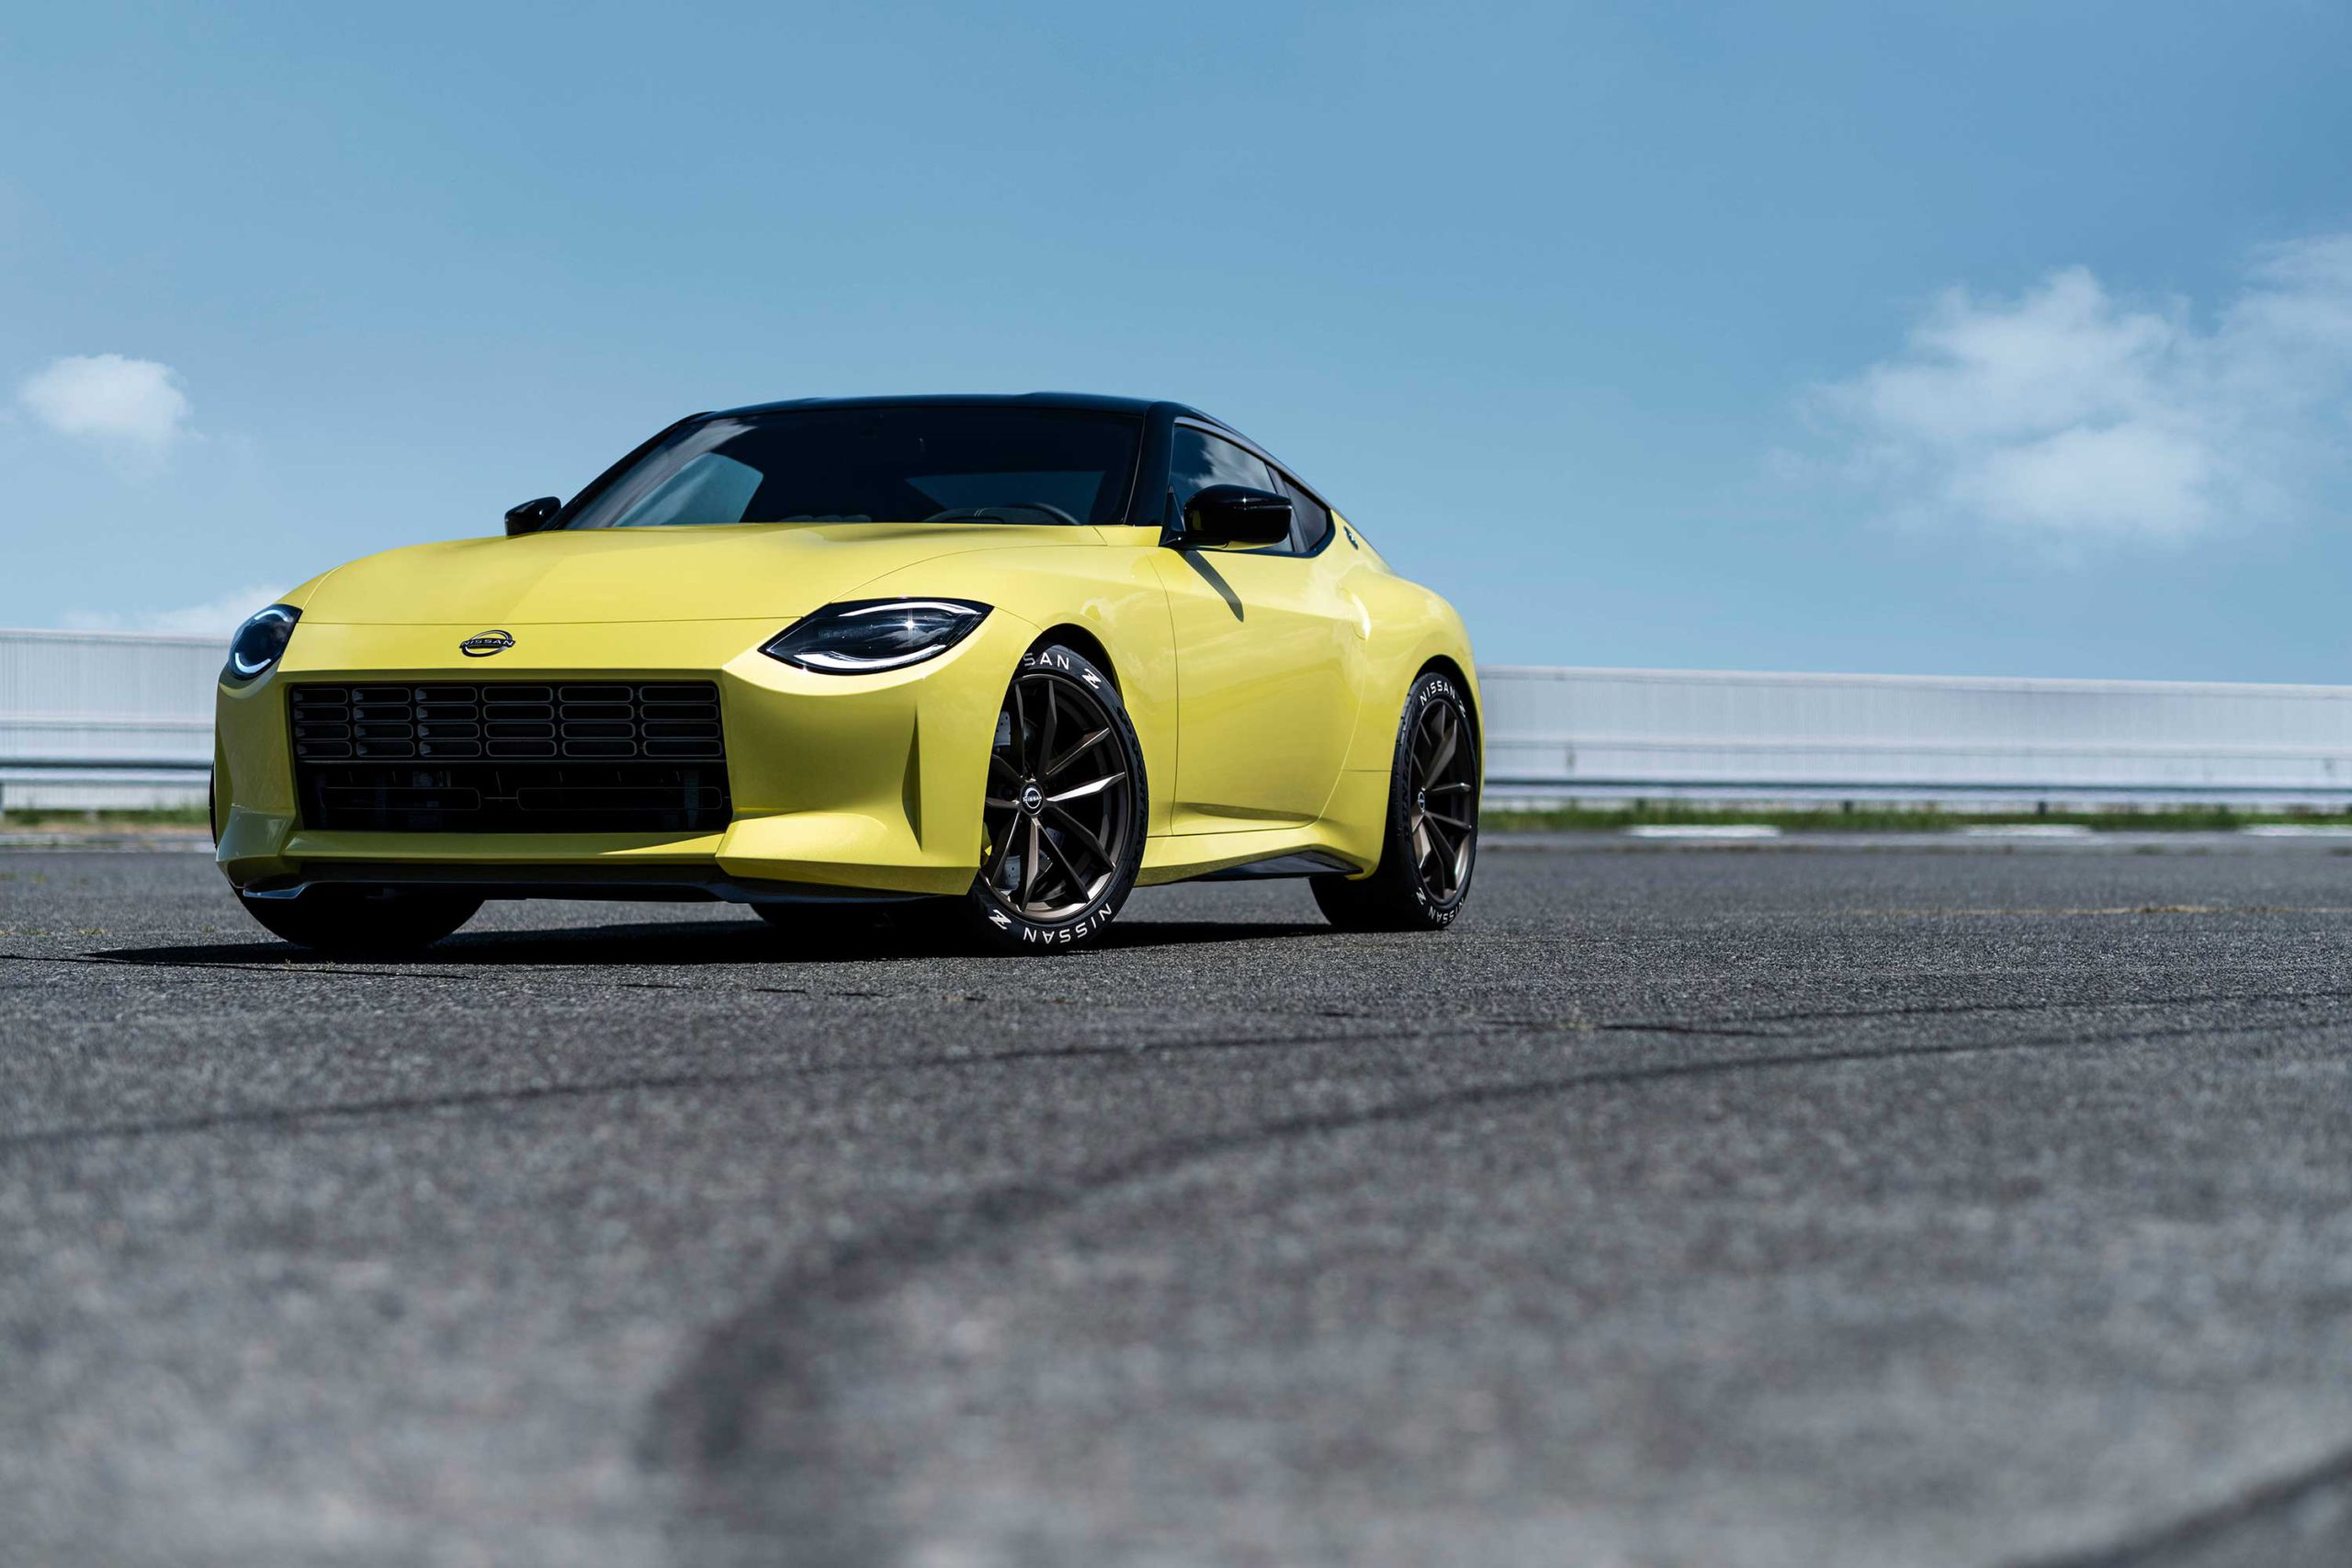 The Nissan 400Z prototype with yellow exterior sits on a paved track with tire marks.